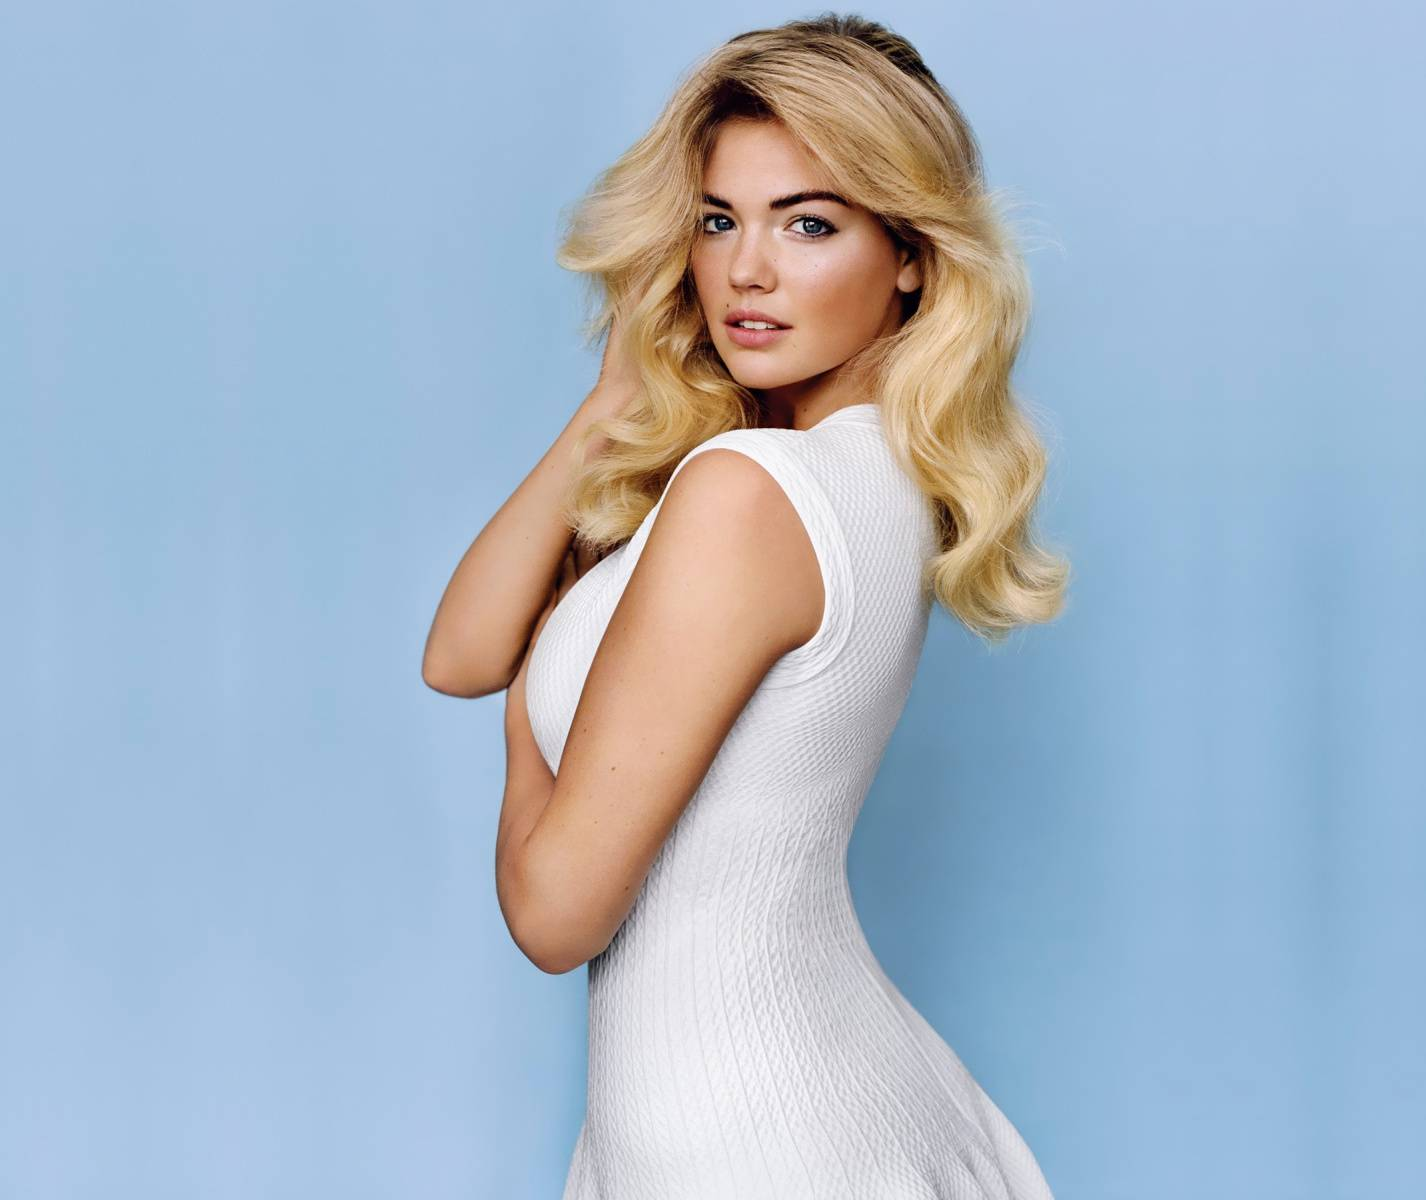 Kate Upton Hd Wallpaper By Rosiejones 56 Free On Zedge